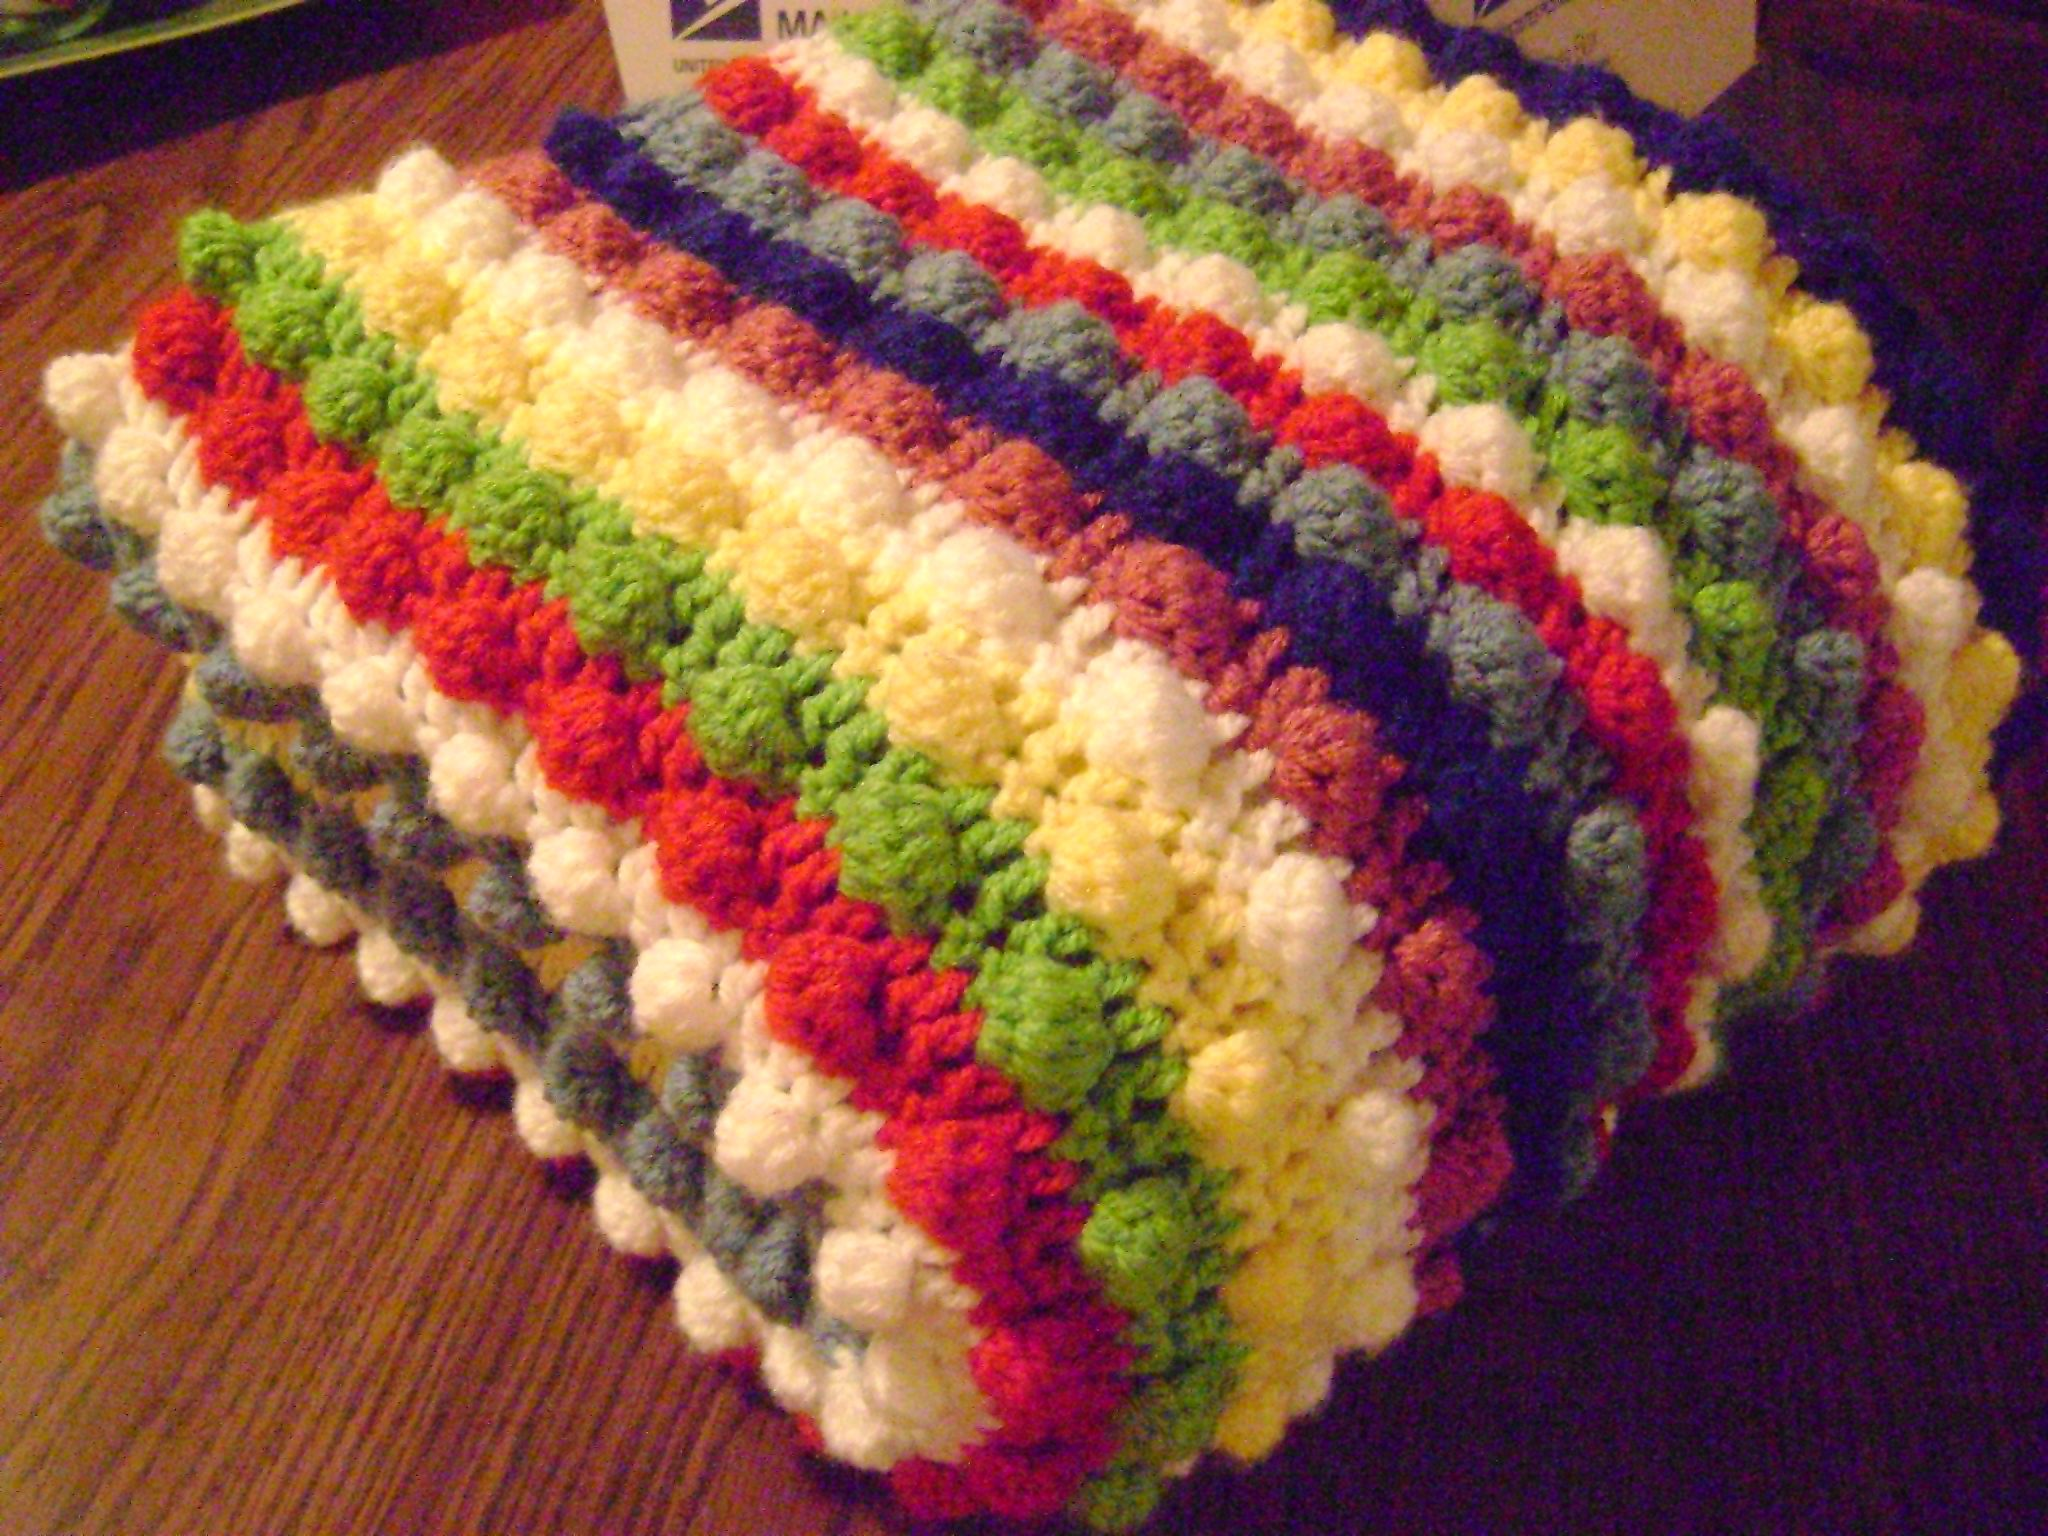 Crochet Patterns Videos Free : Free #Crochet Pattern: The Blackberry Salad Striped Afghan!